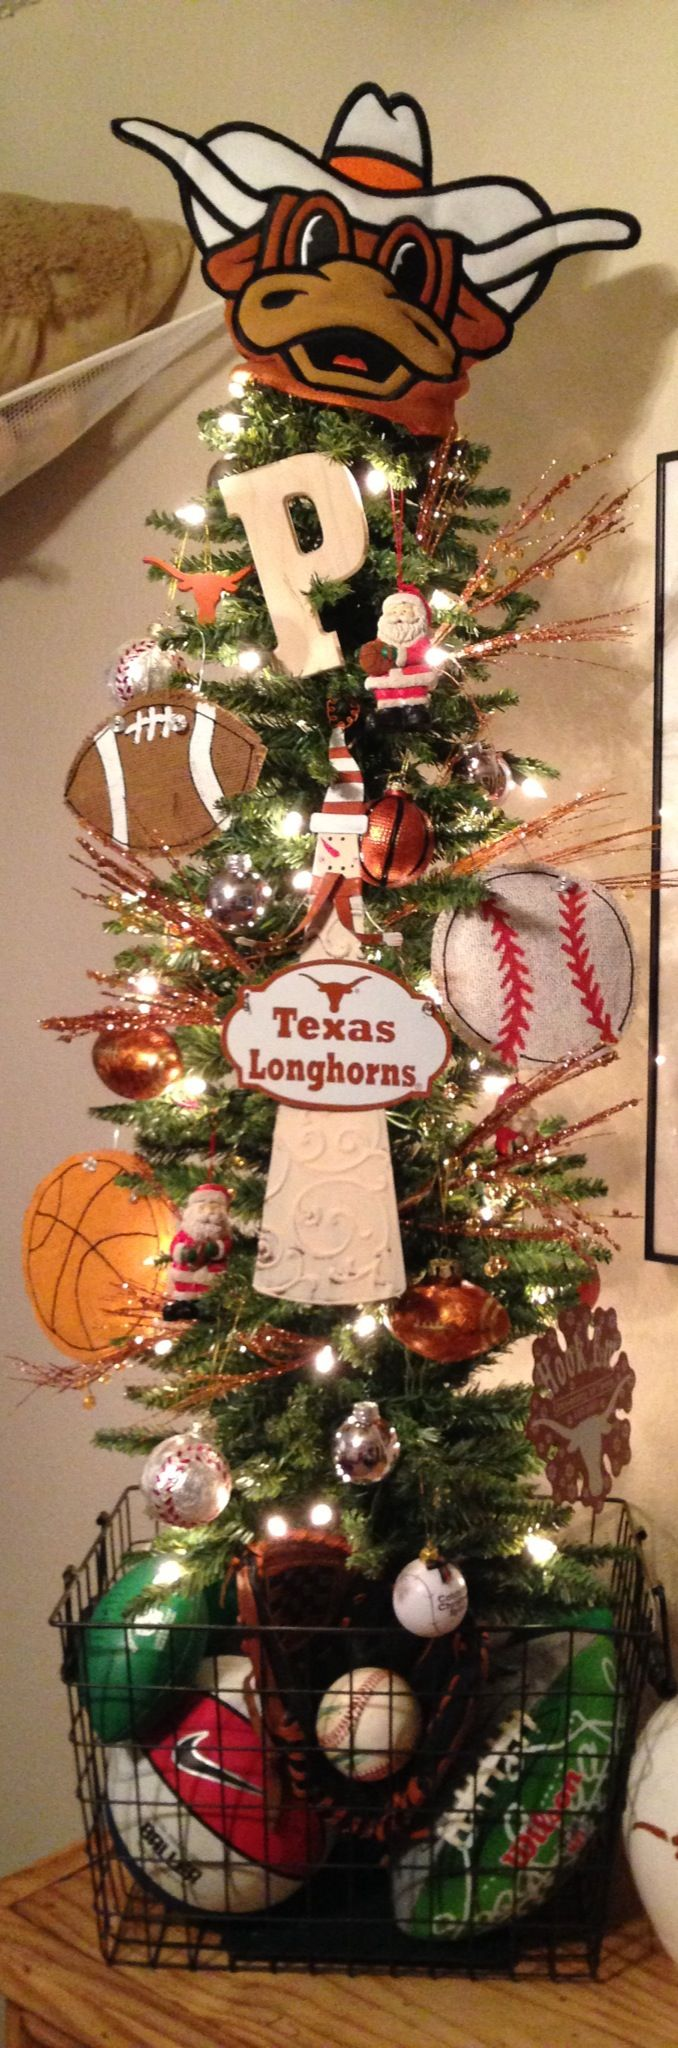 Texas Longhorns Sports Themed Christmas Tree Me